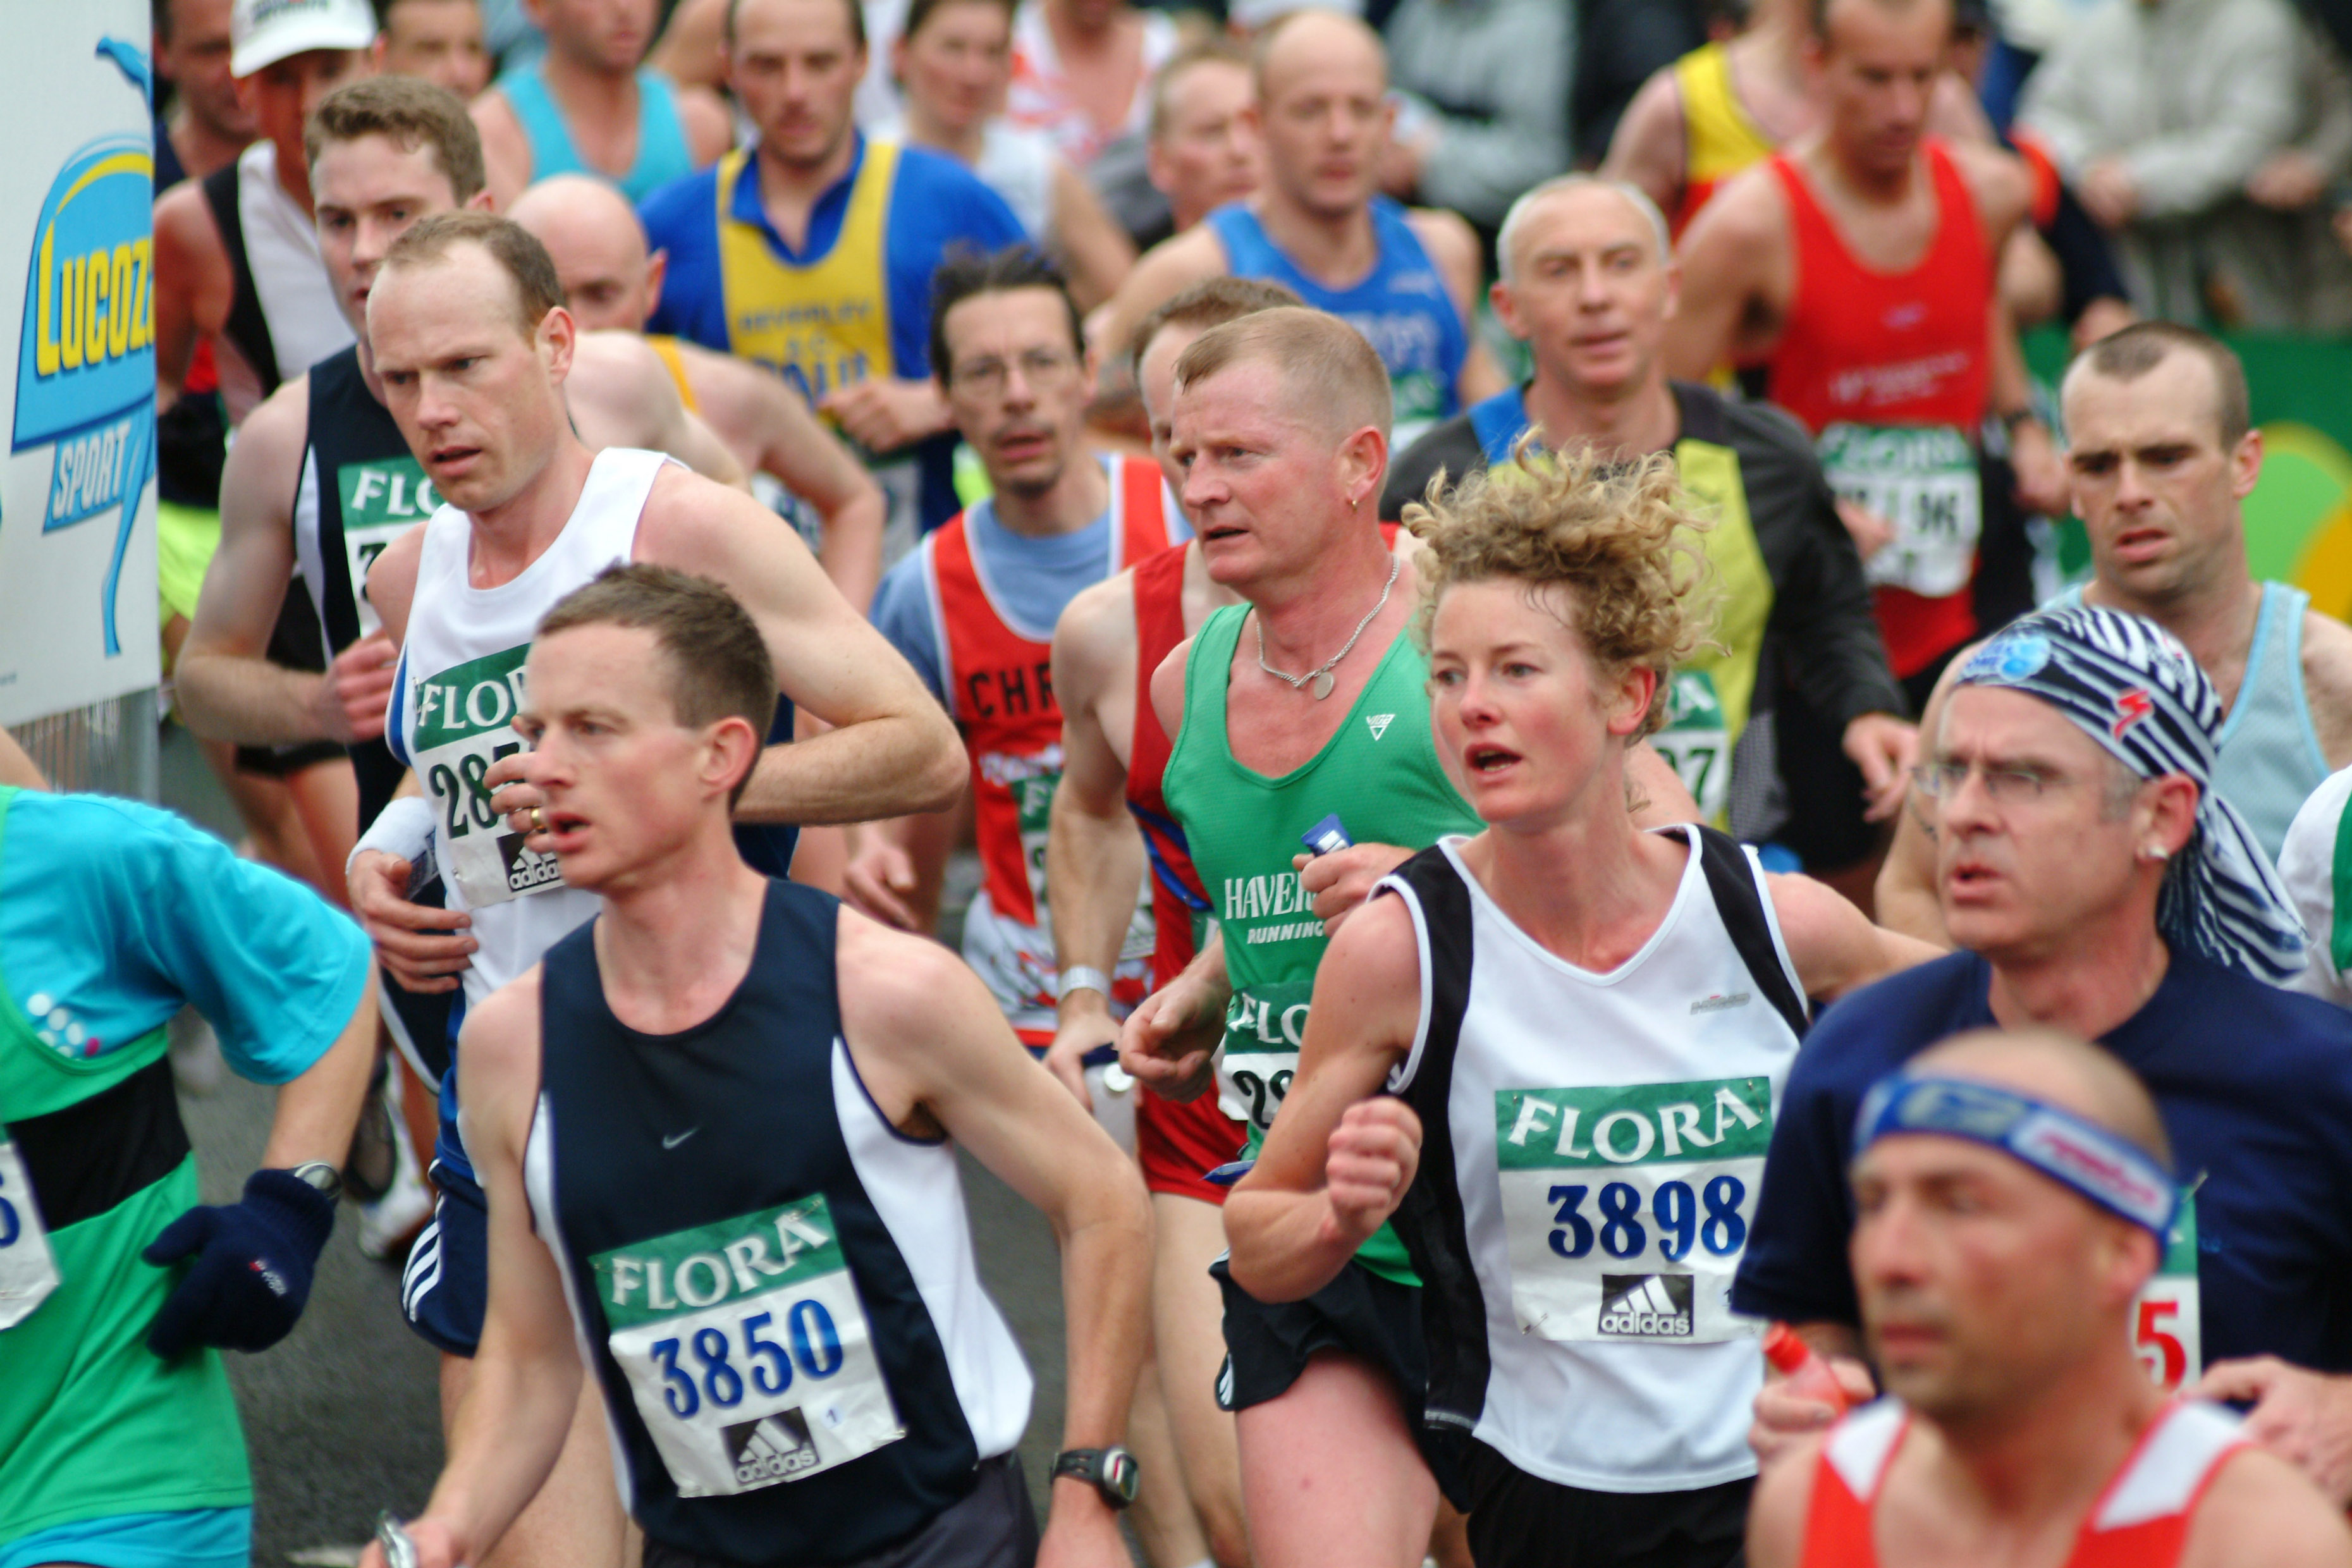 Why do they have pacers in the London Marathon?